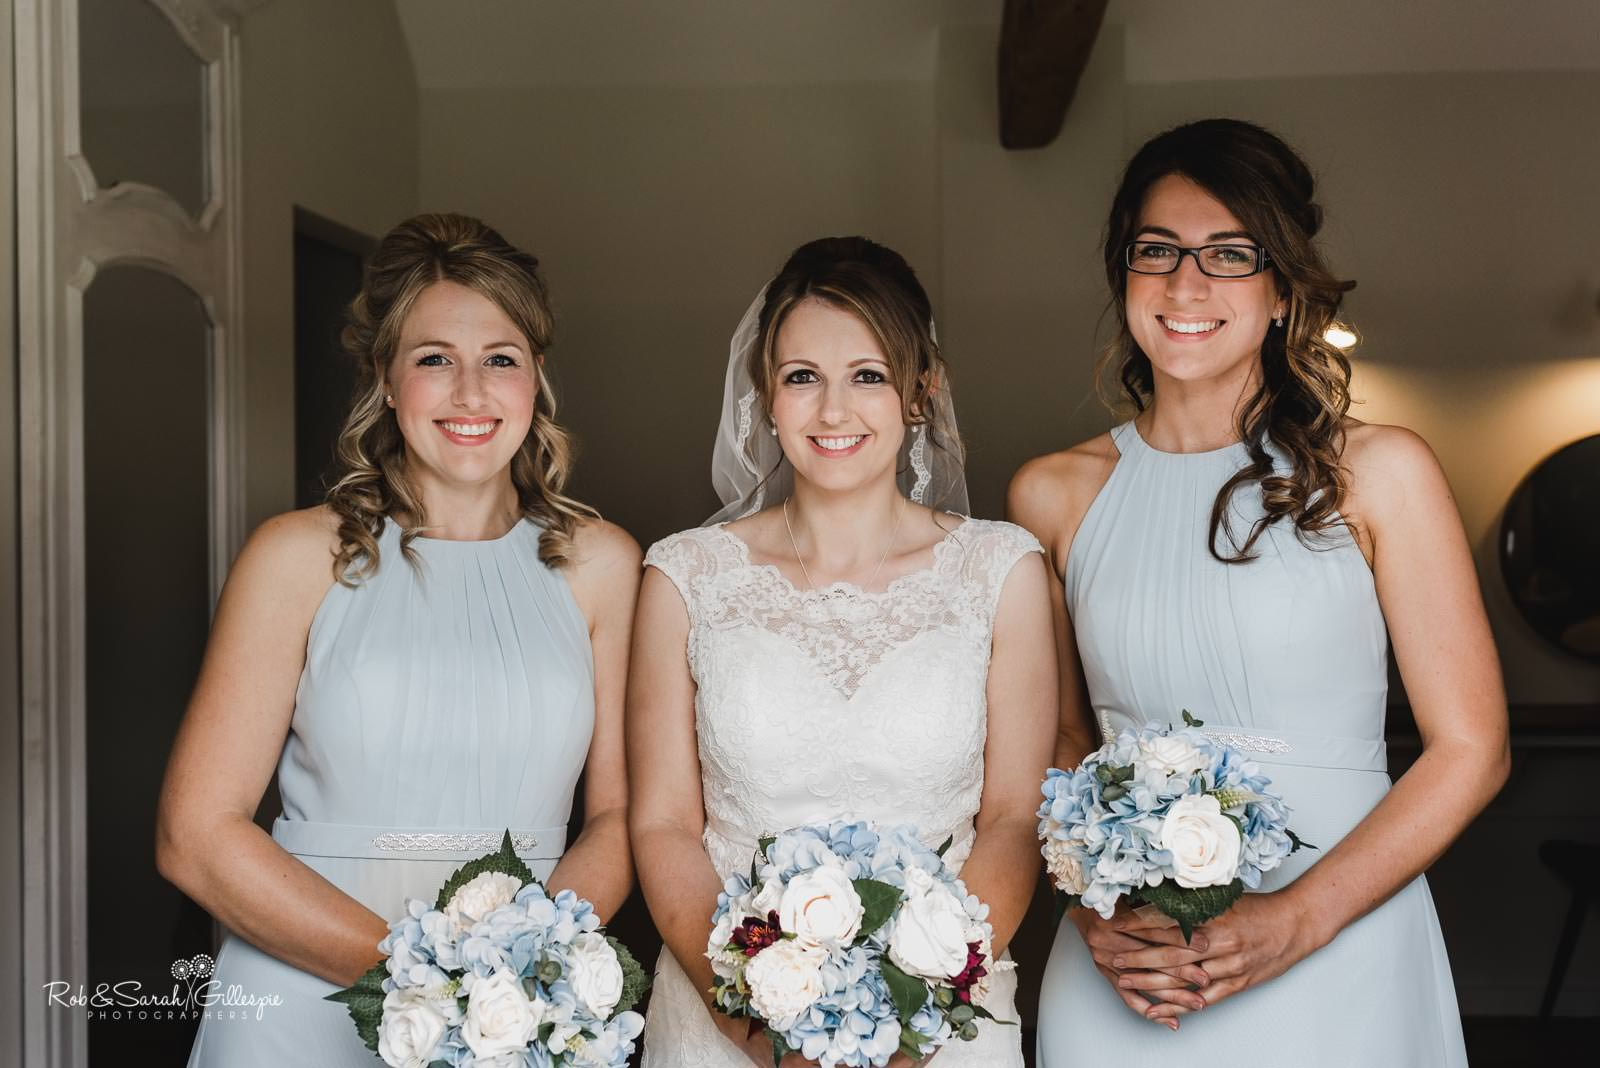 Bride and bridesmaids group photo at Swallows Nest Barn